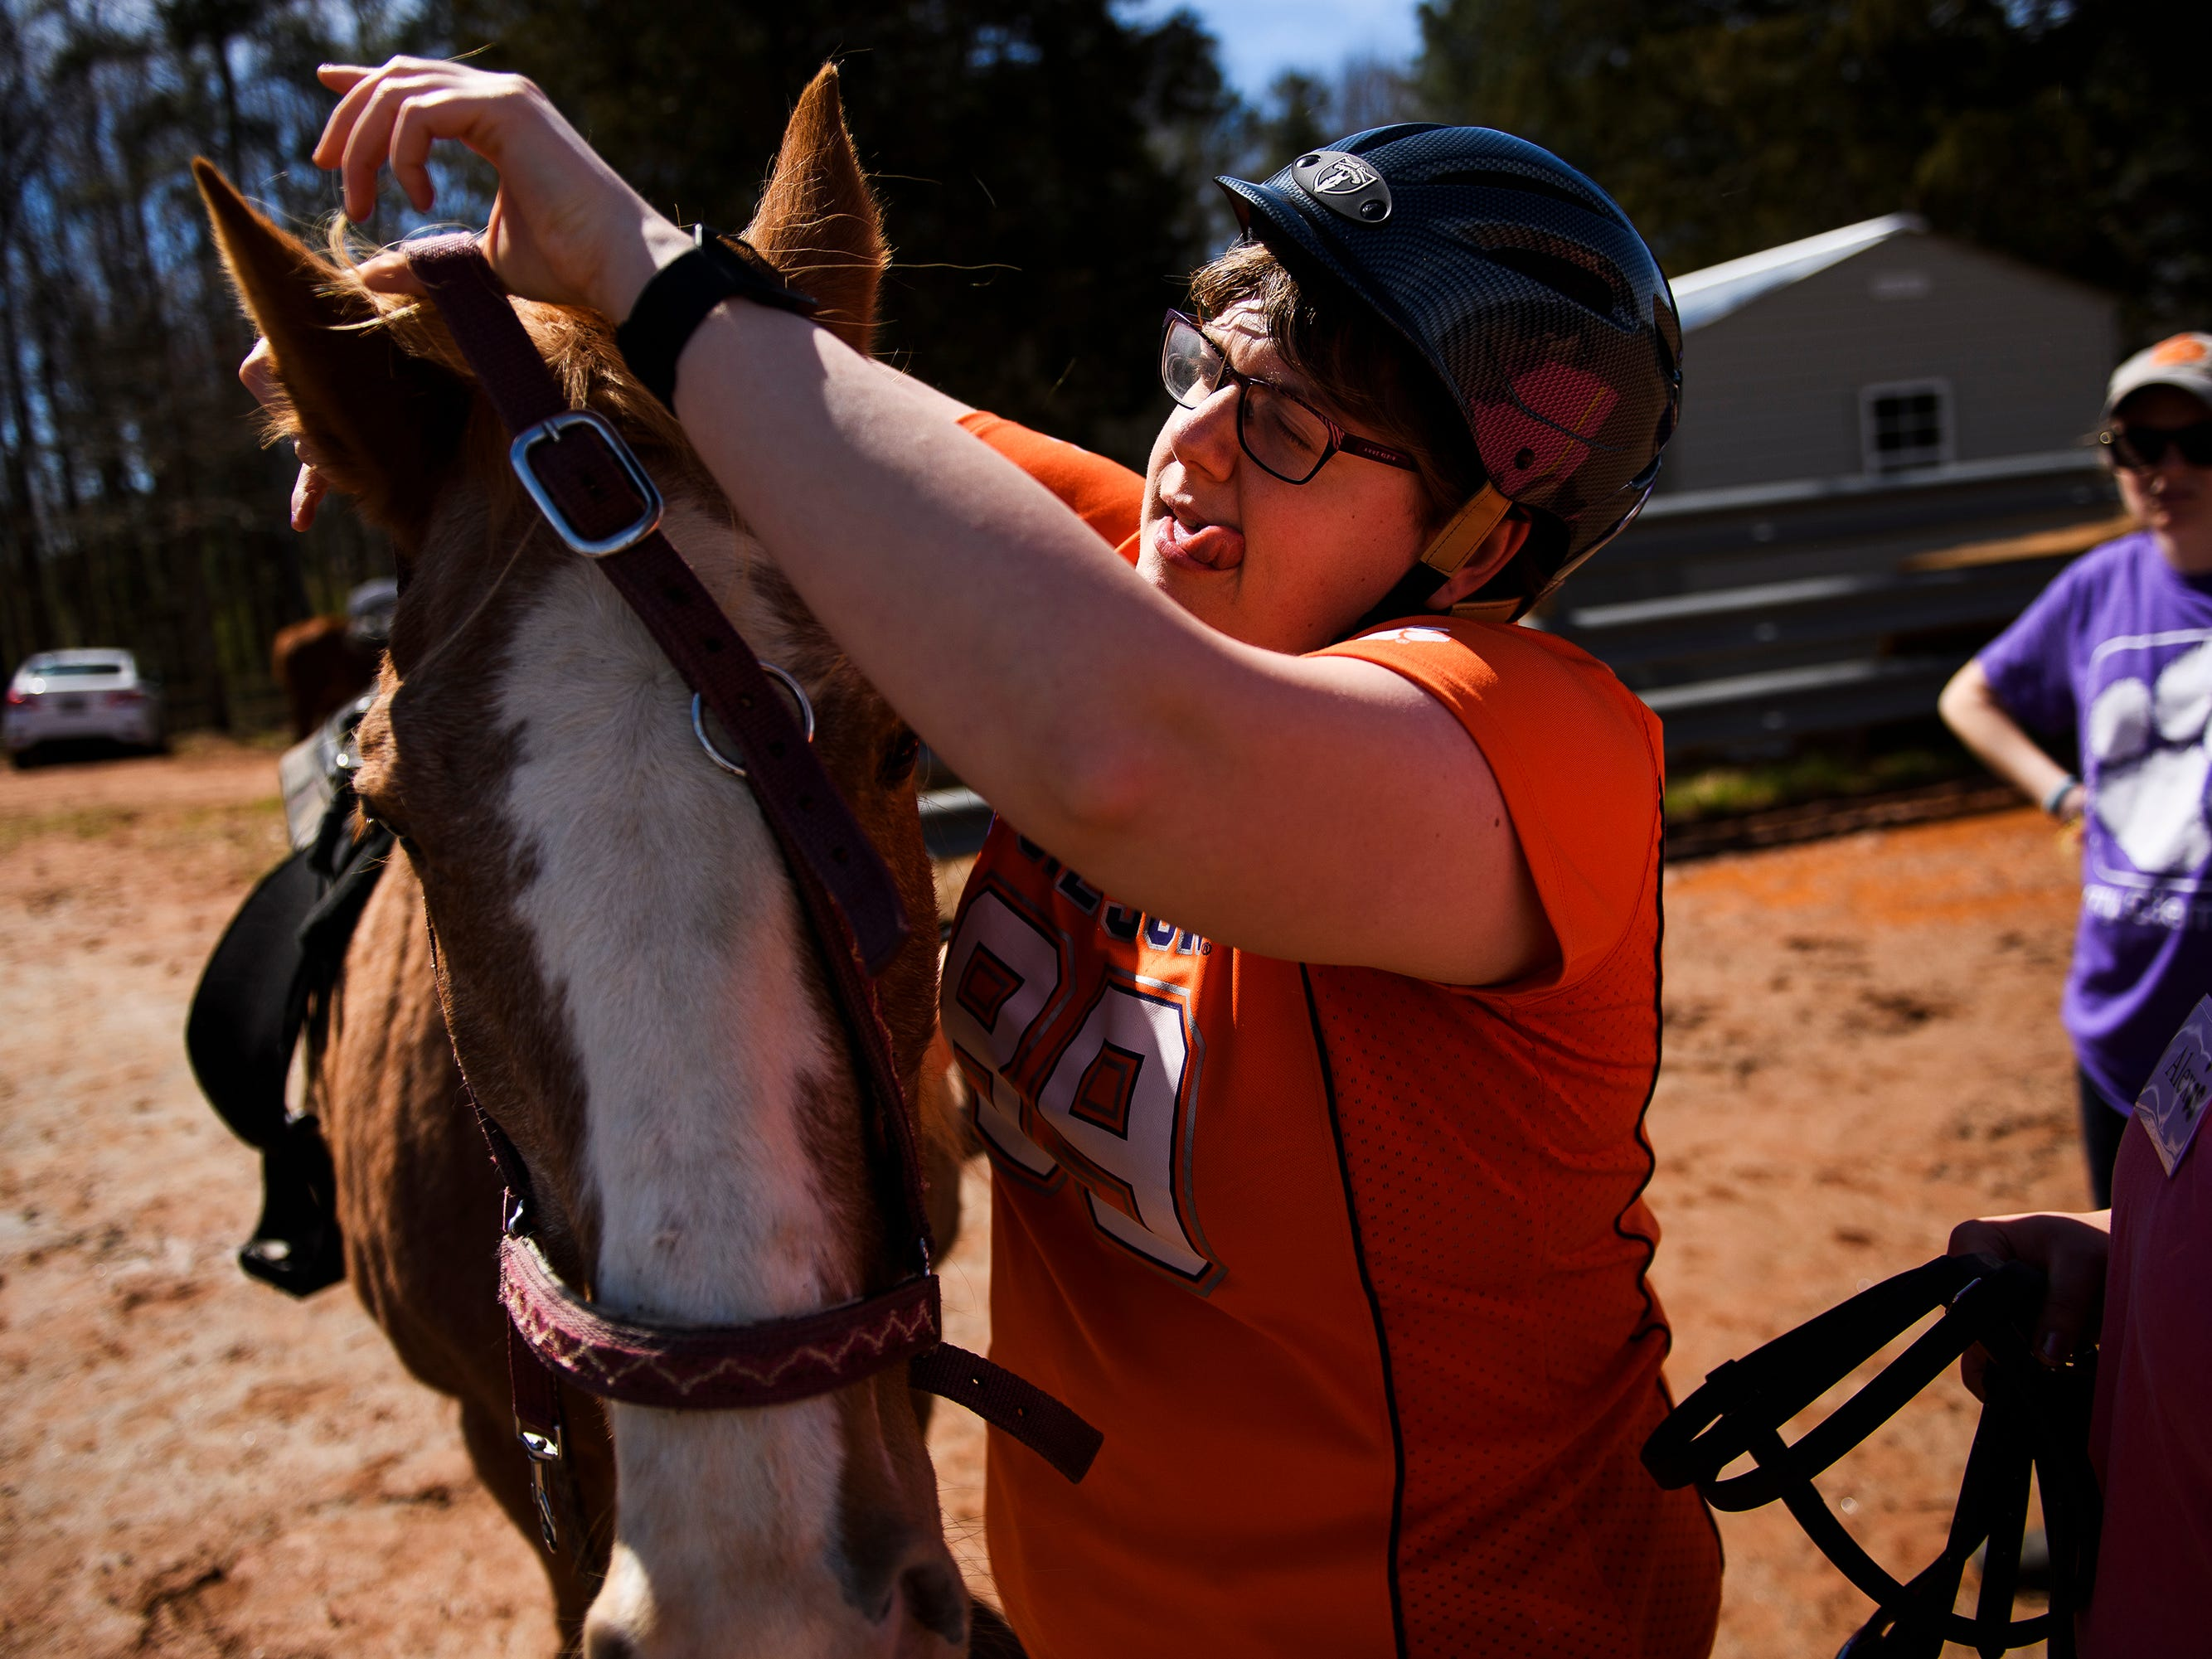 Sarah Wright, 29, adjusts the harness on a horse during a riding lesson at J Rest Farm Tuesday, March 12, 2019.